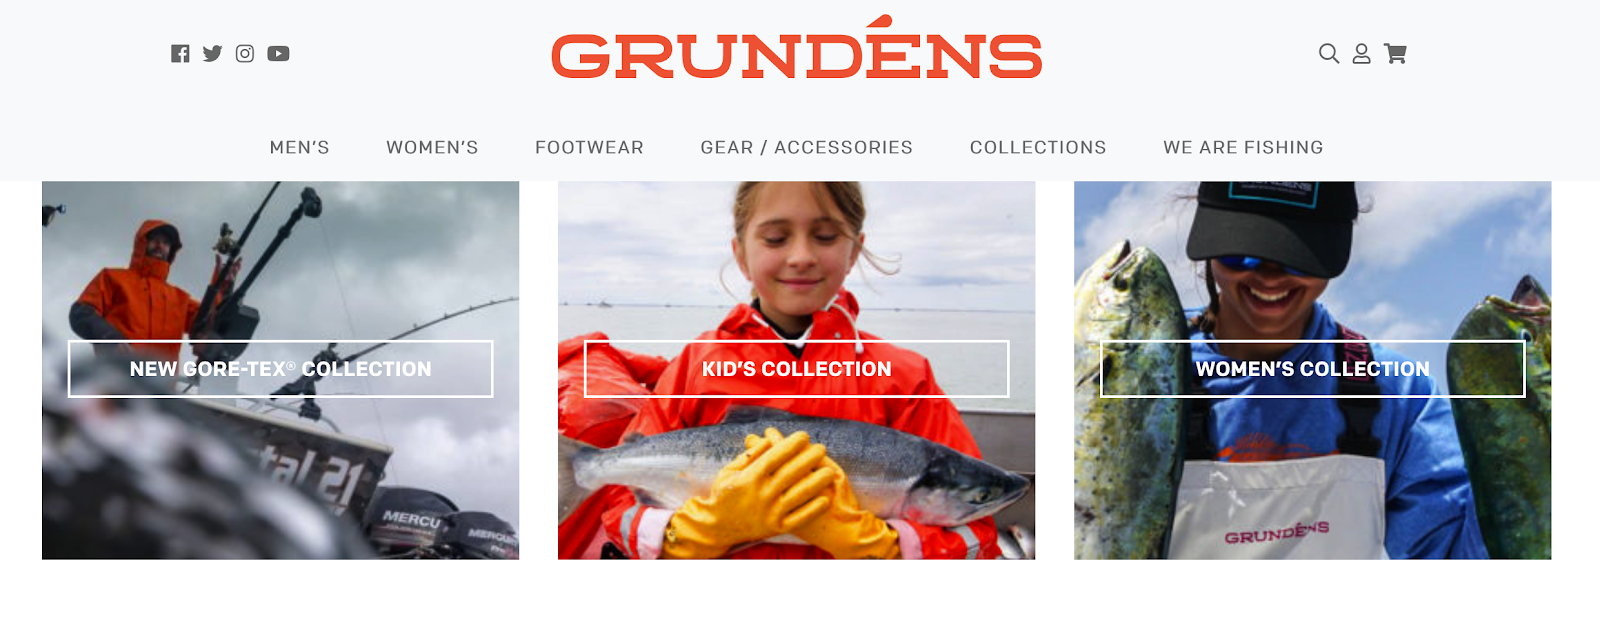 Partnership Opps for Outdoor Loving Influencers | Grudéns Fishing Apparel